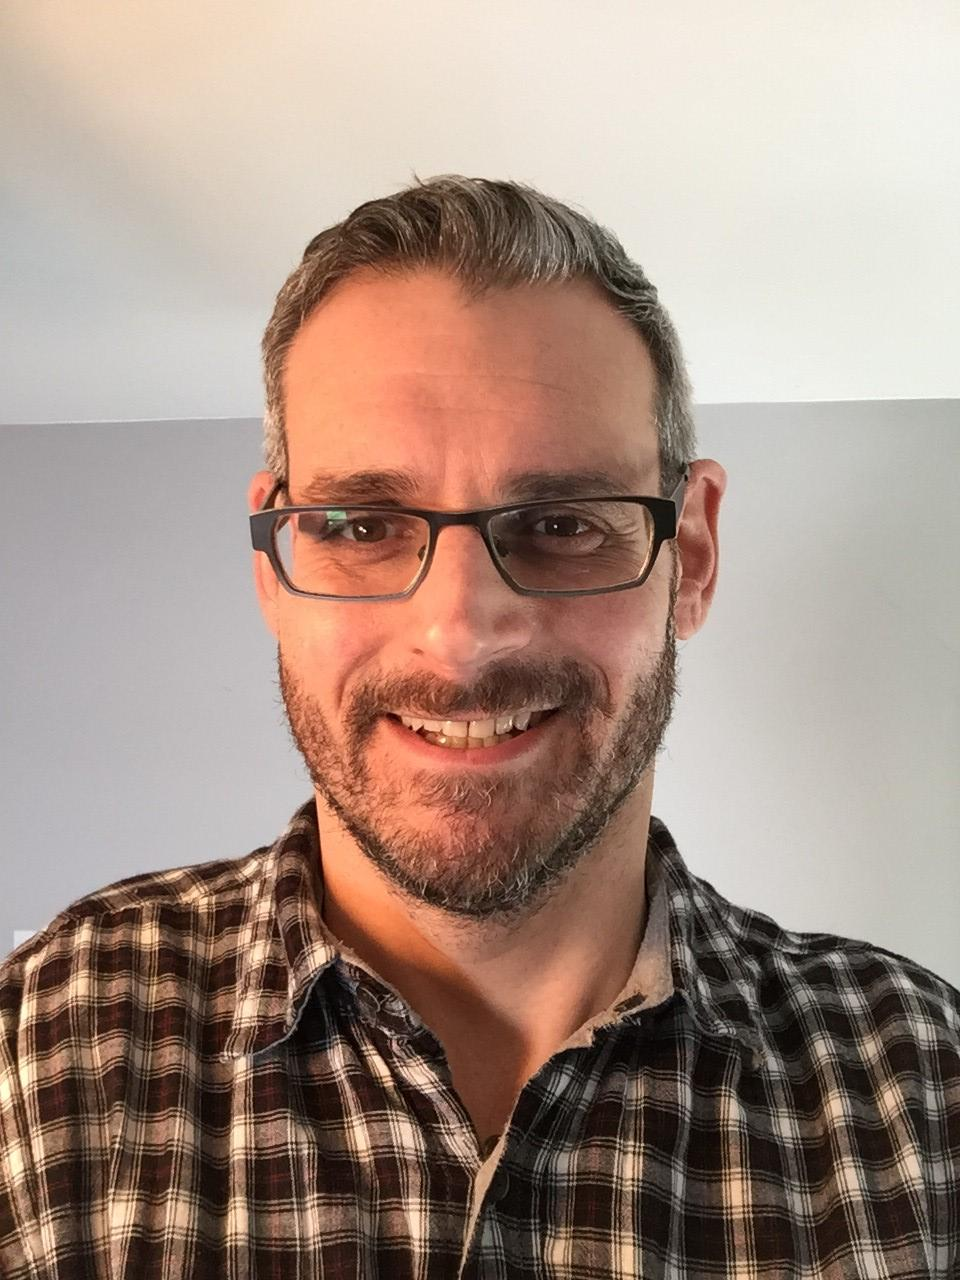 Meet Dan Strempel, Senior Analyst at Simba Information